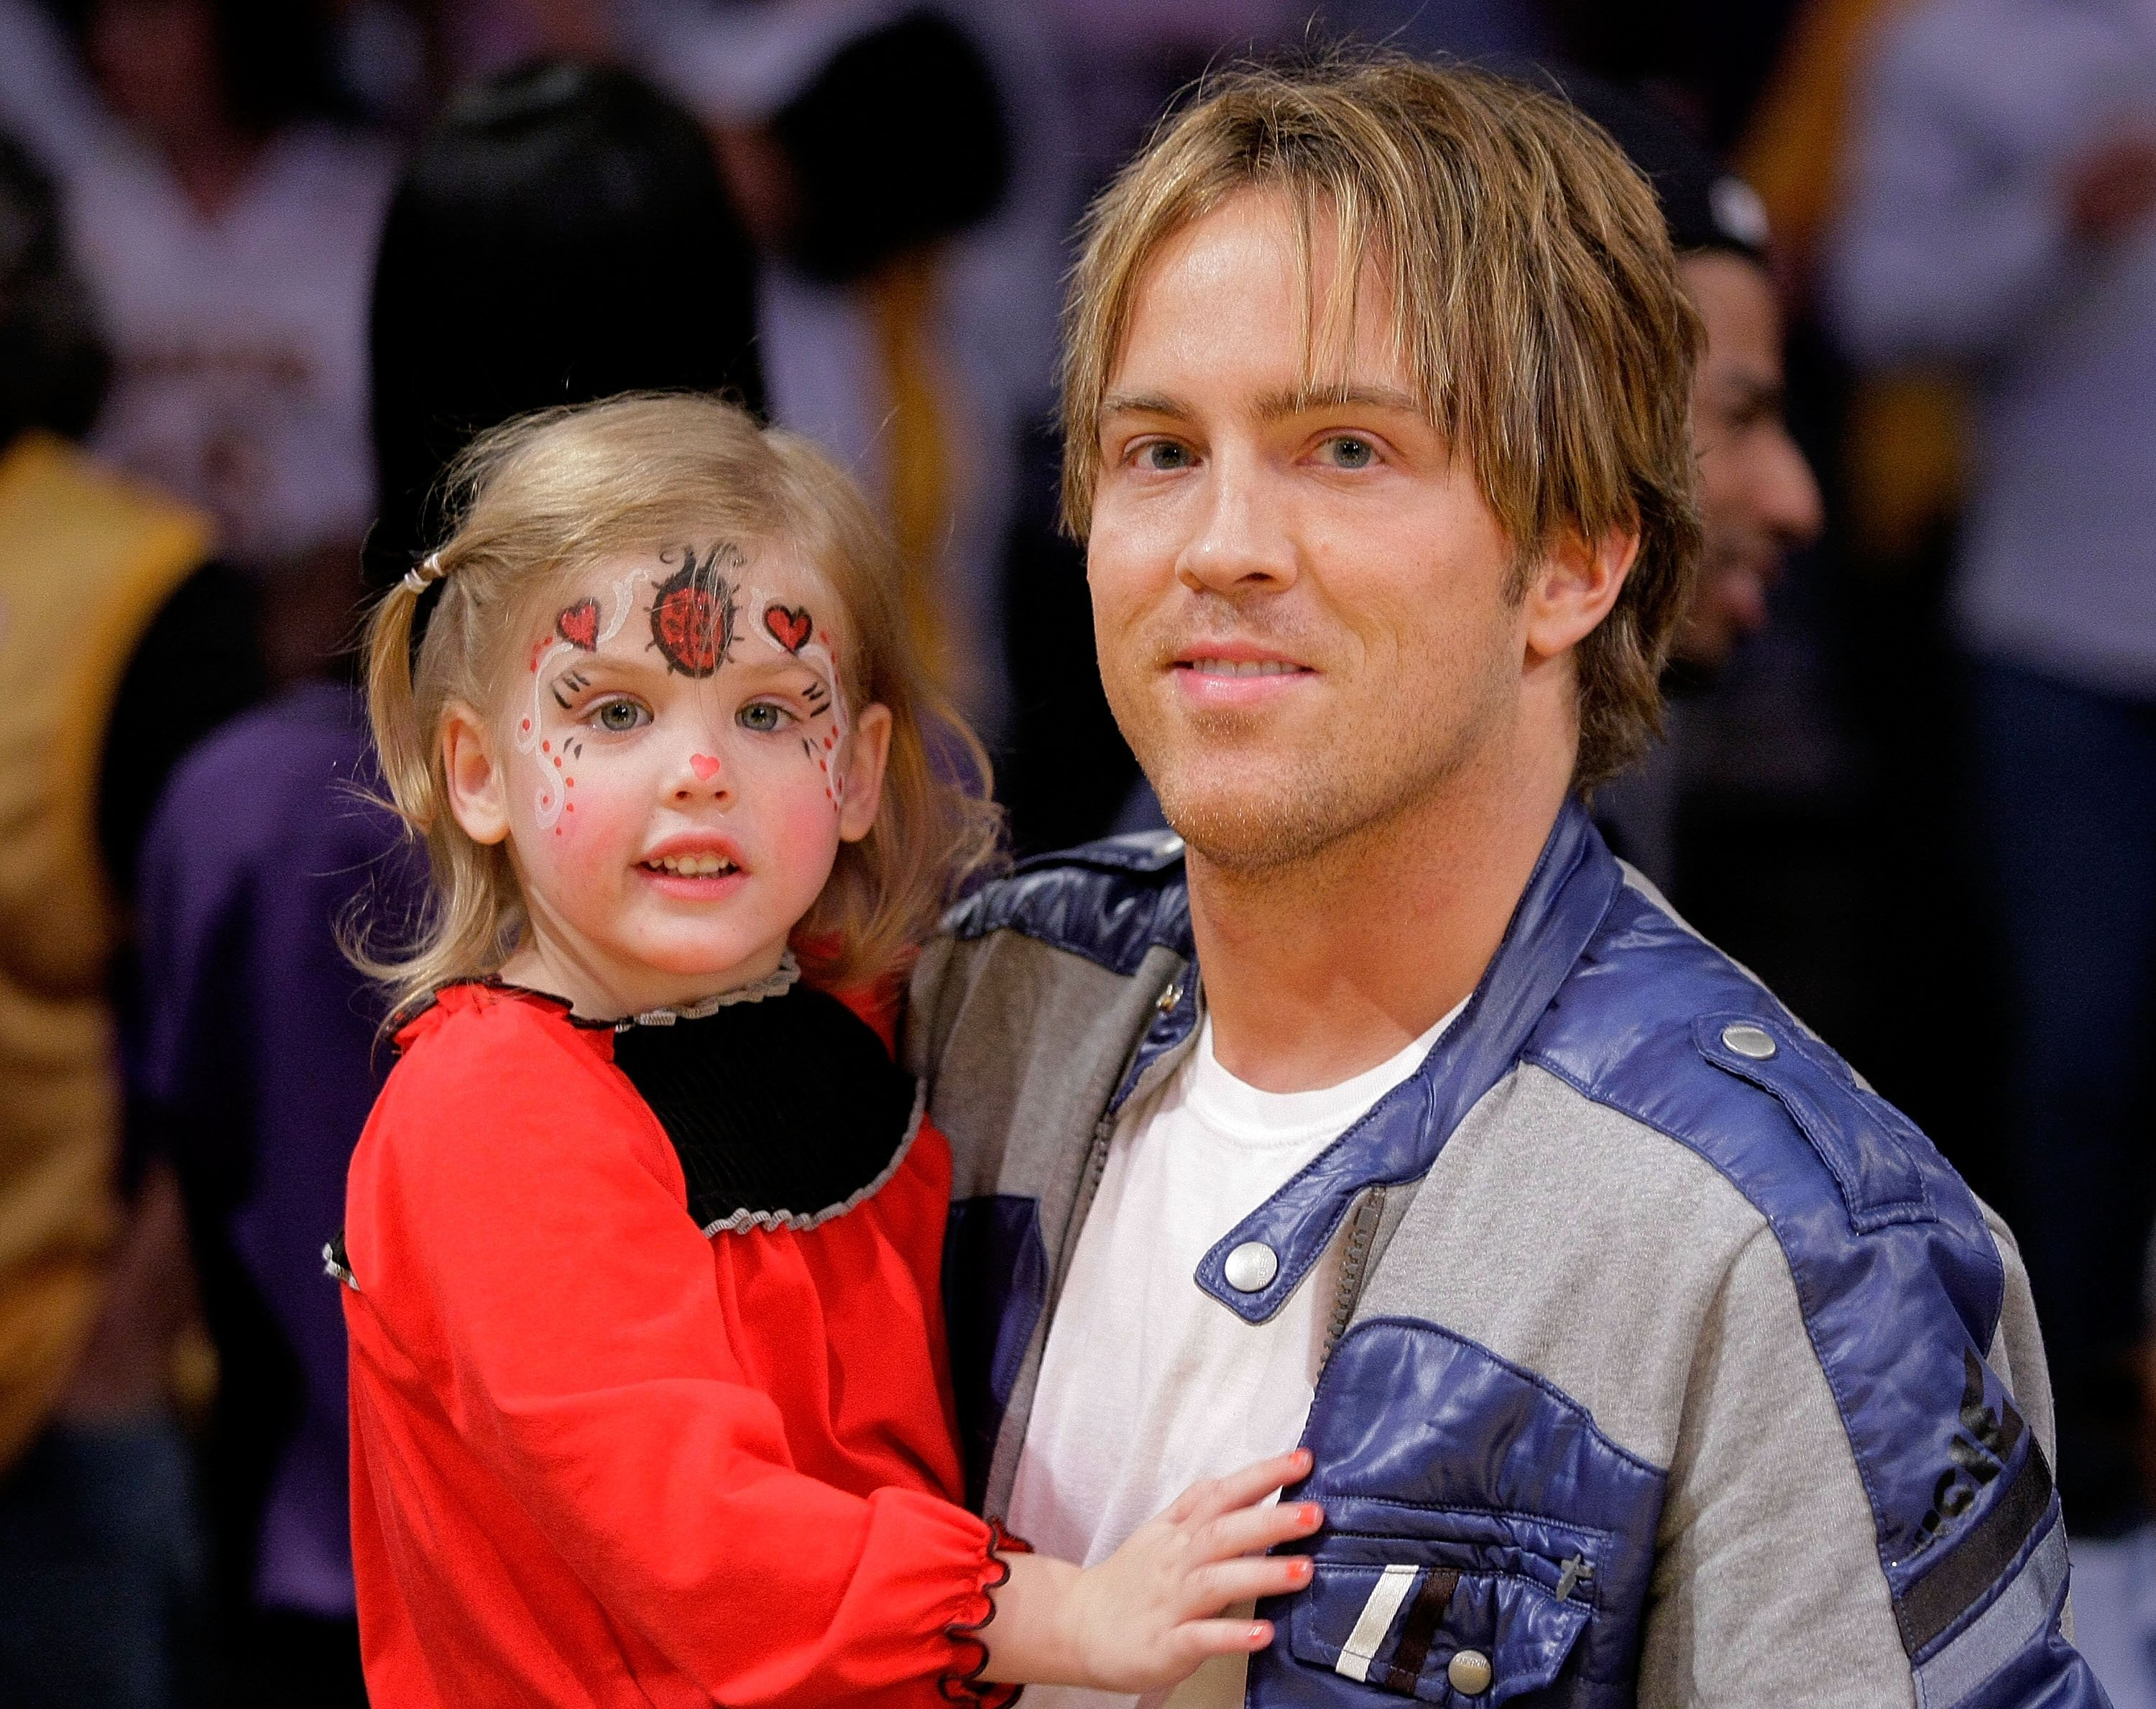 Larry and Dannielynn Birkhead at a game held at the Staples Center on November 8, 2009 in Los Angeles, California | Photo: Getty Images